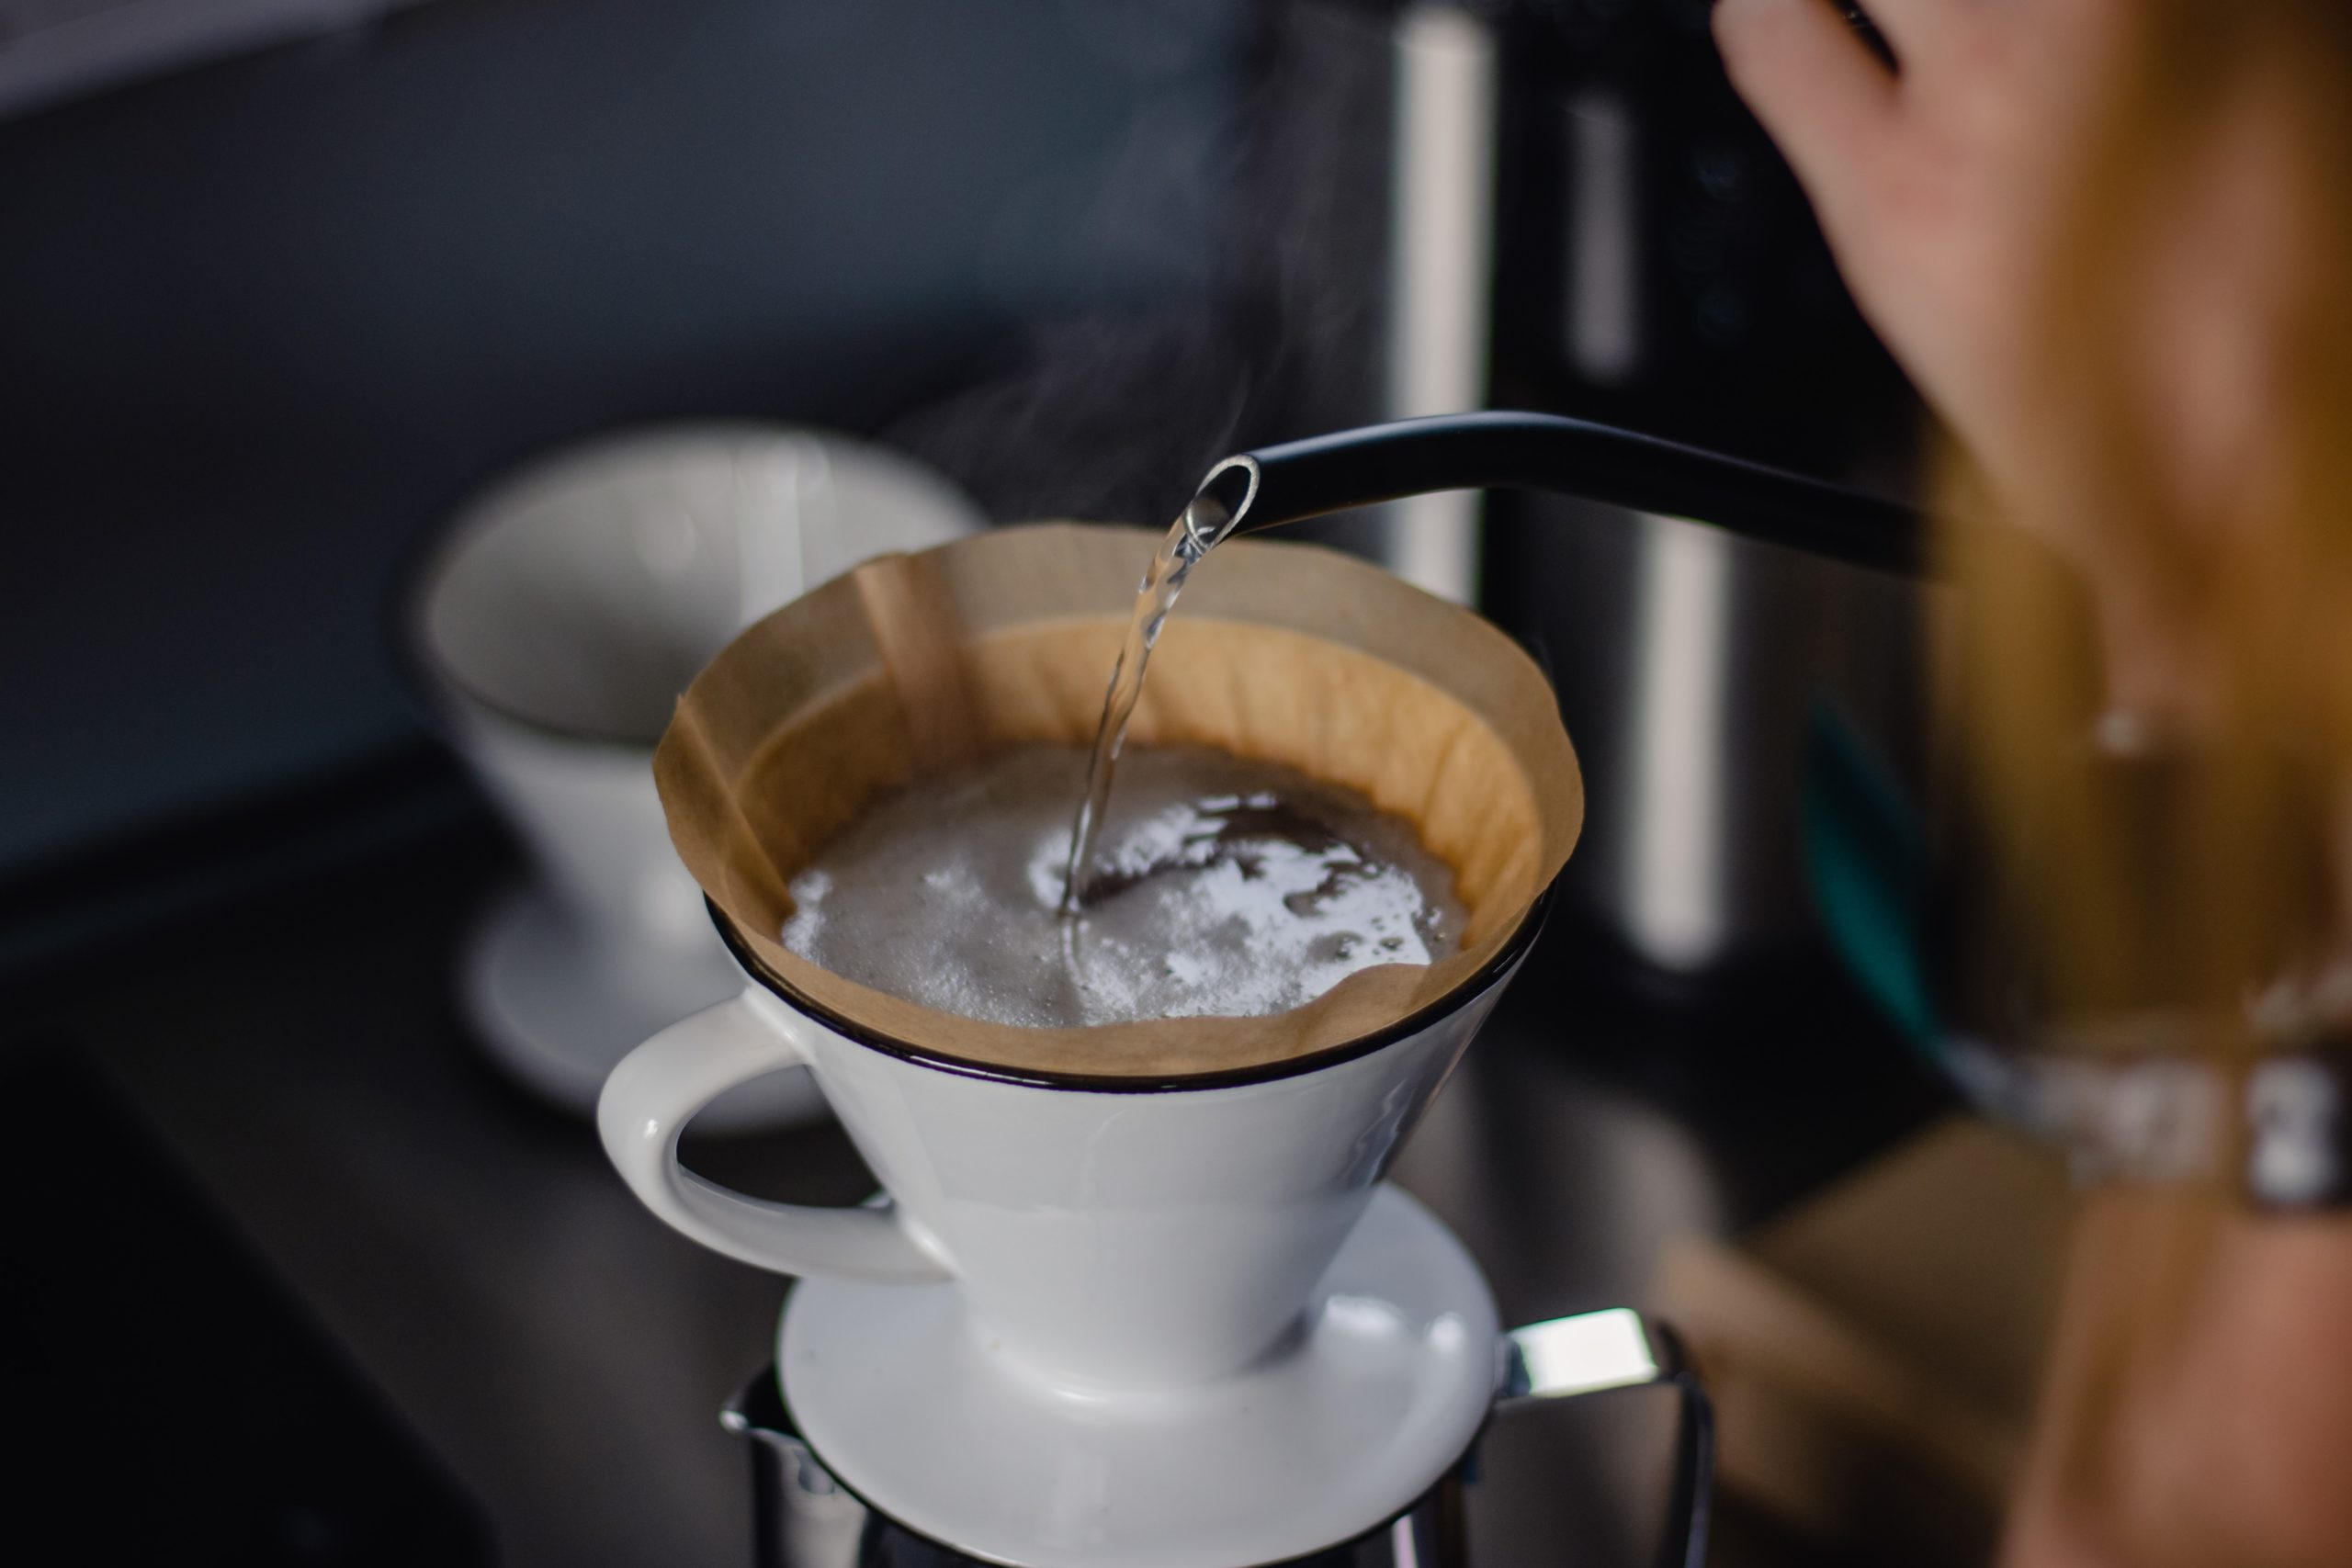 pouring hot water into a pour over from a gooseneck kettle